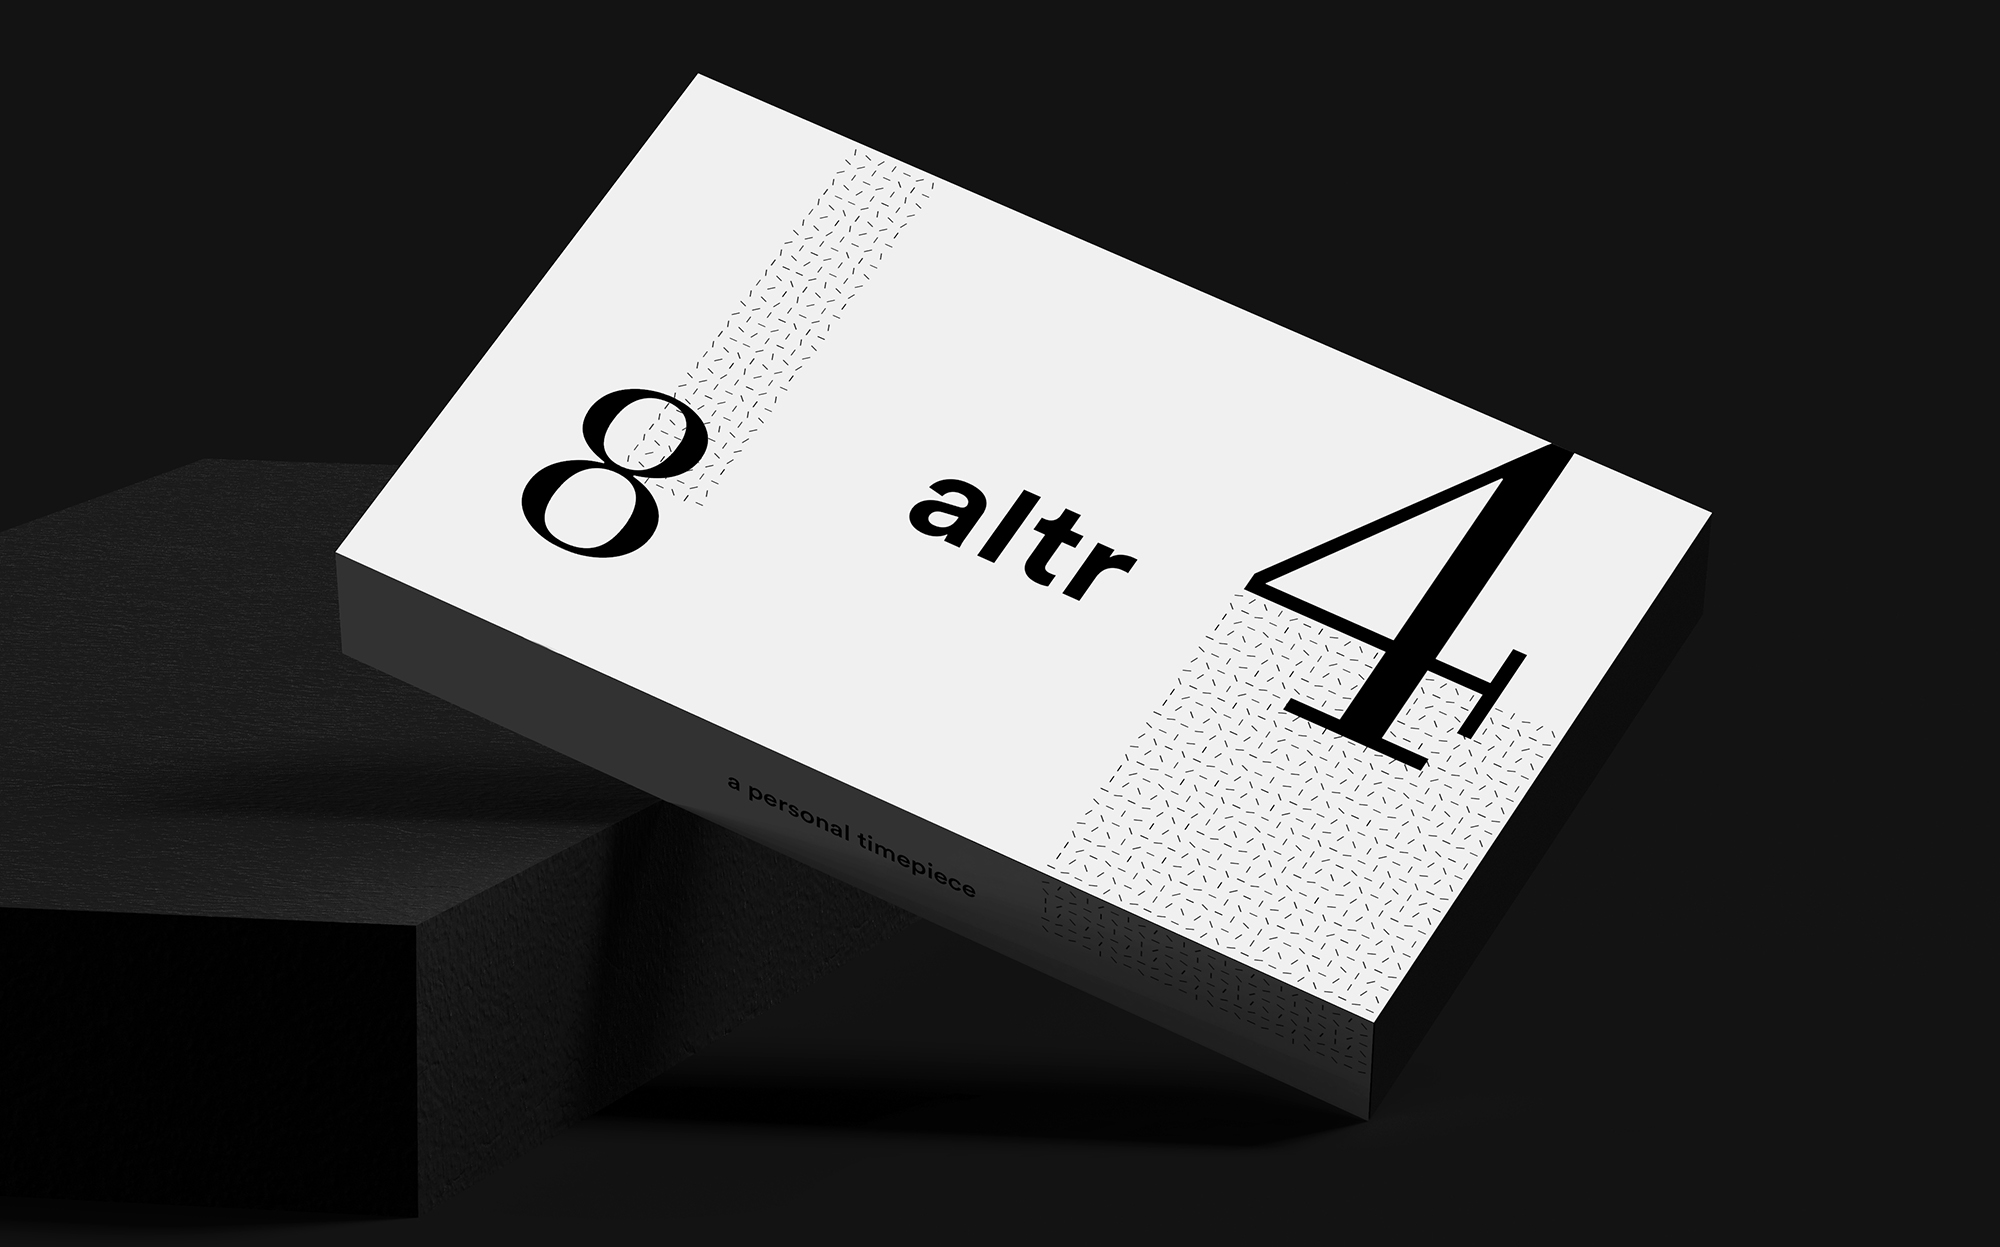 packaging_bodoni_2.jpg